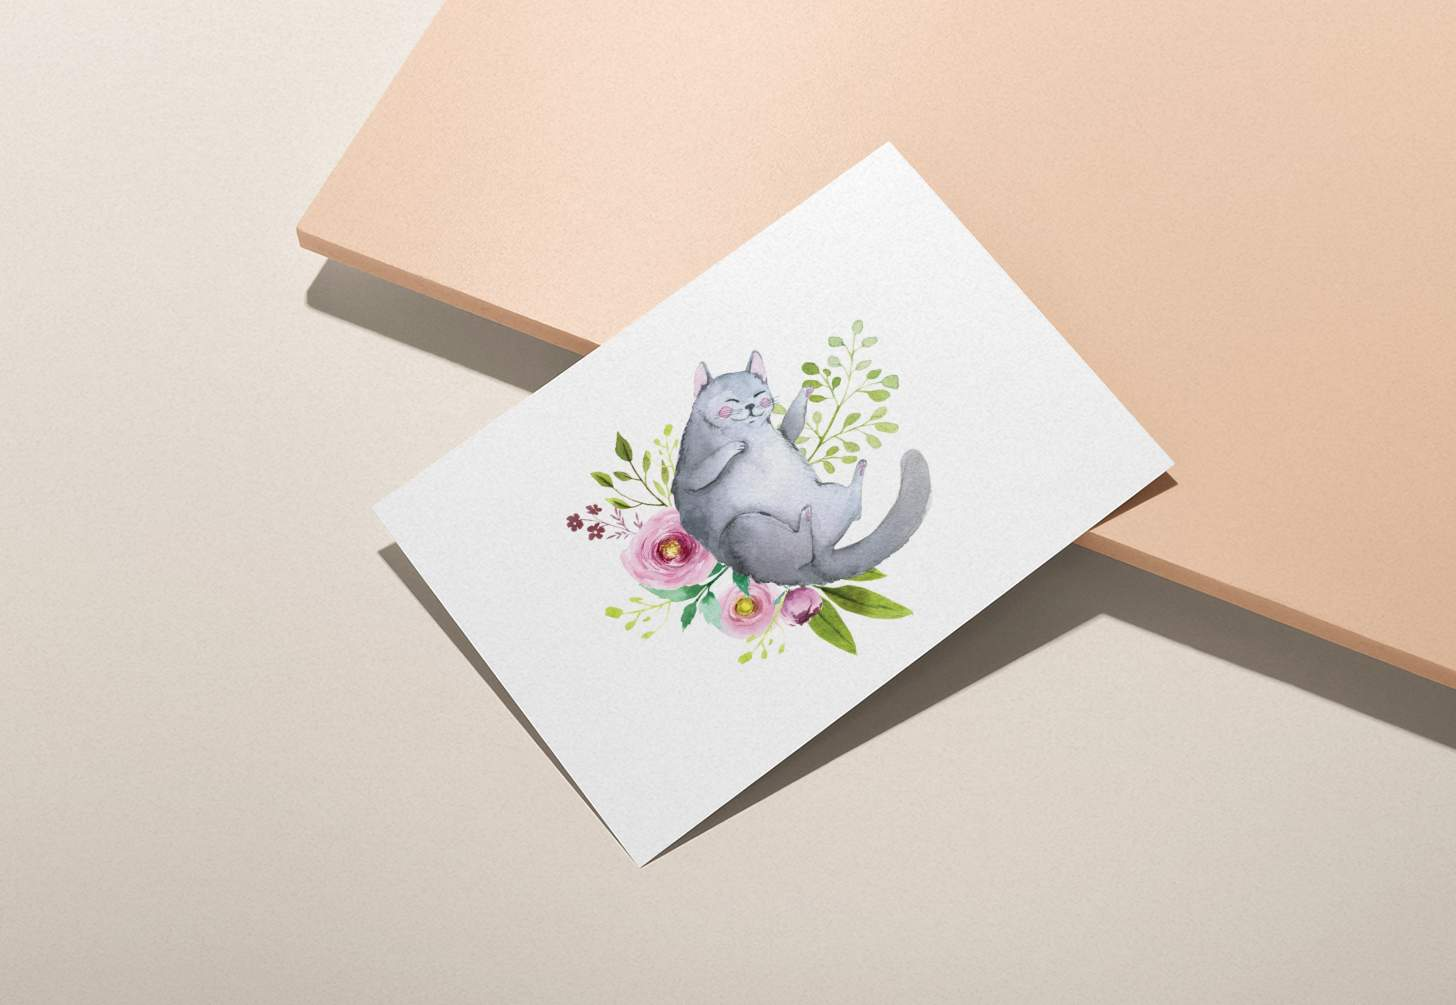 Gray cat with flowers design card on pink background